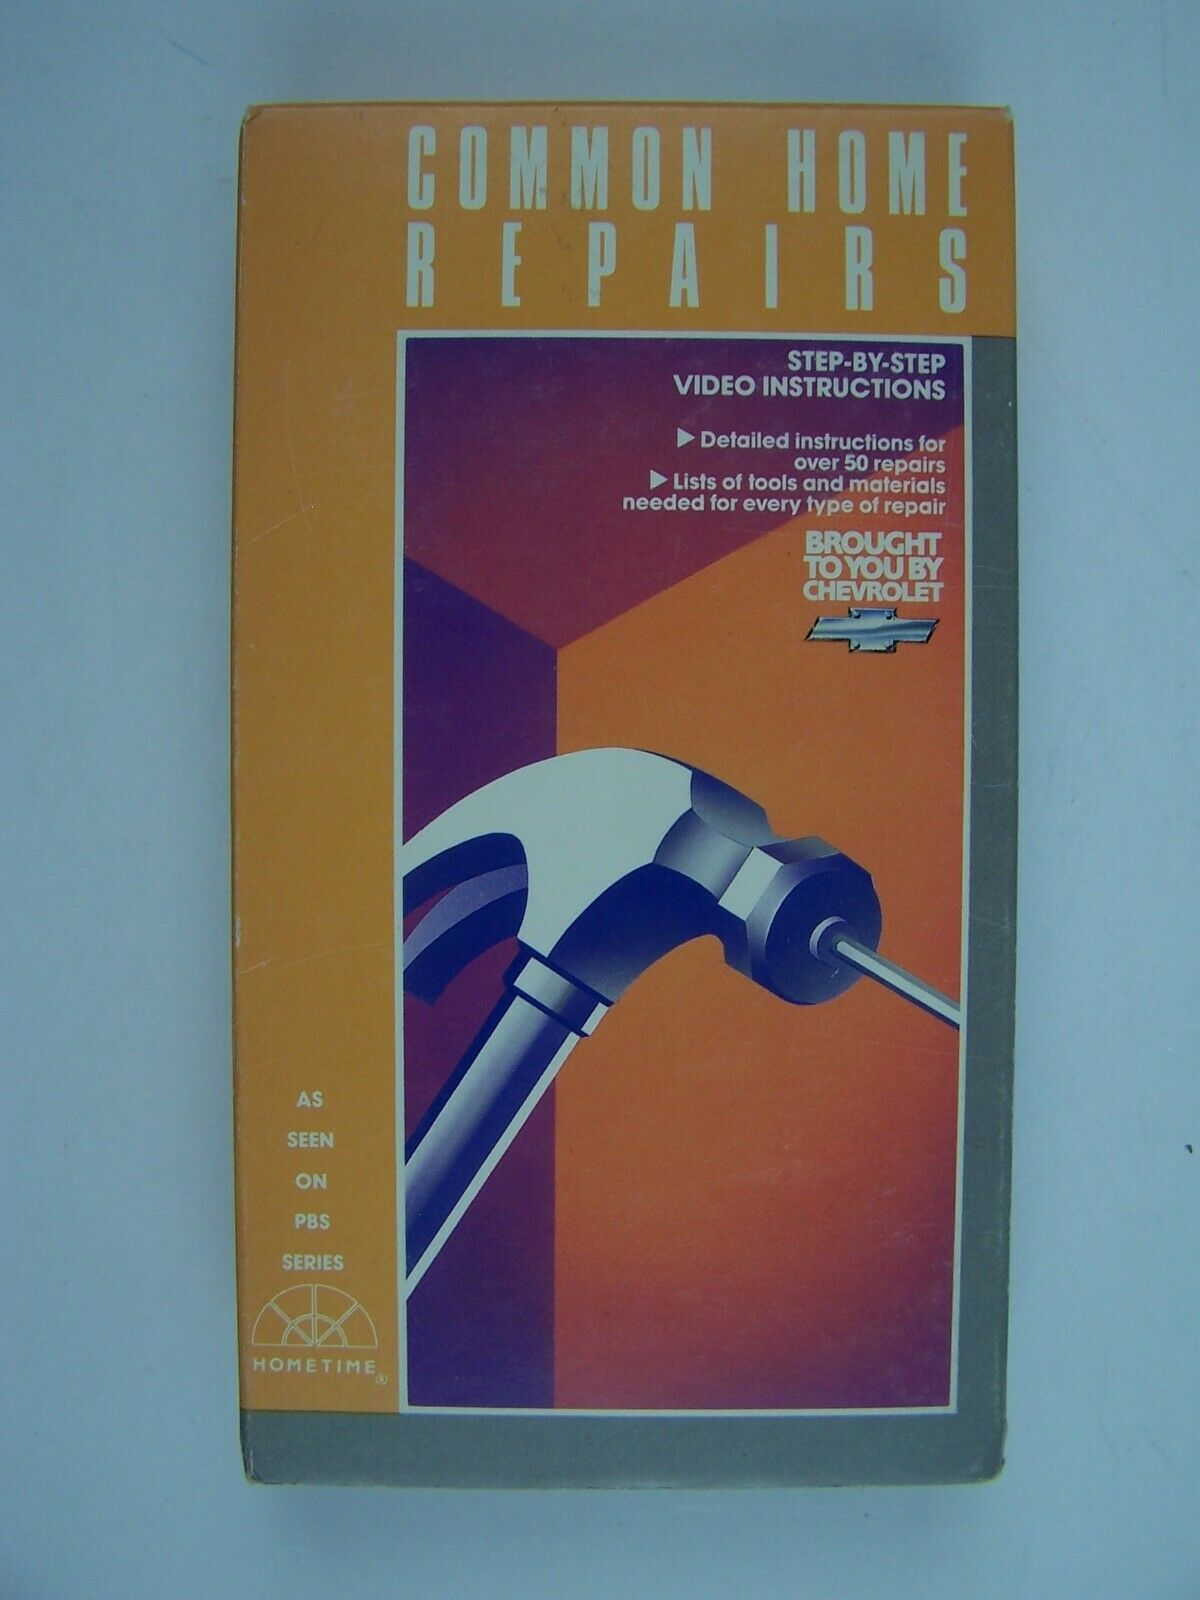 Common Home Repairs VHS Video